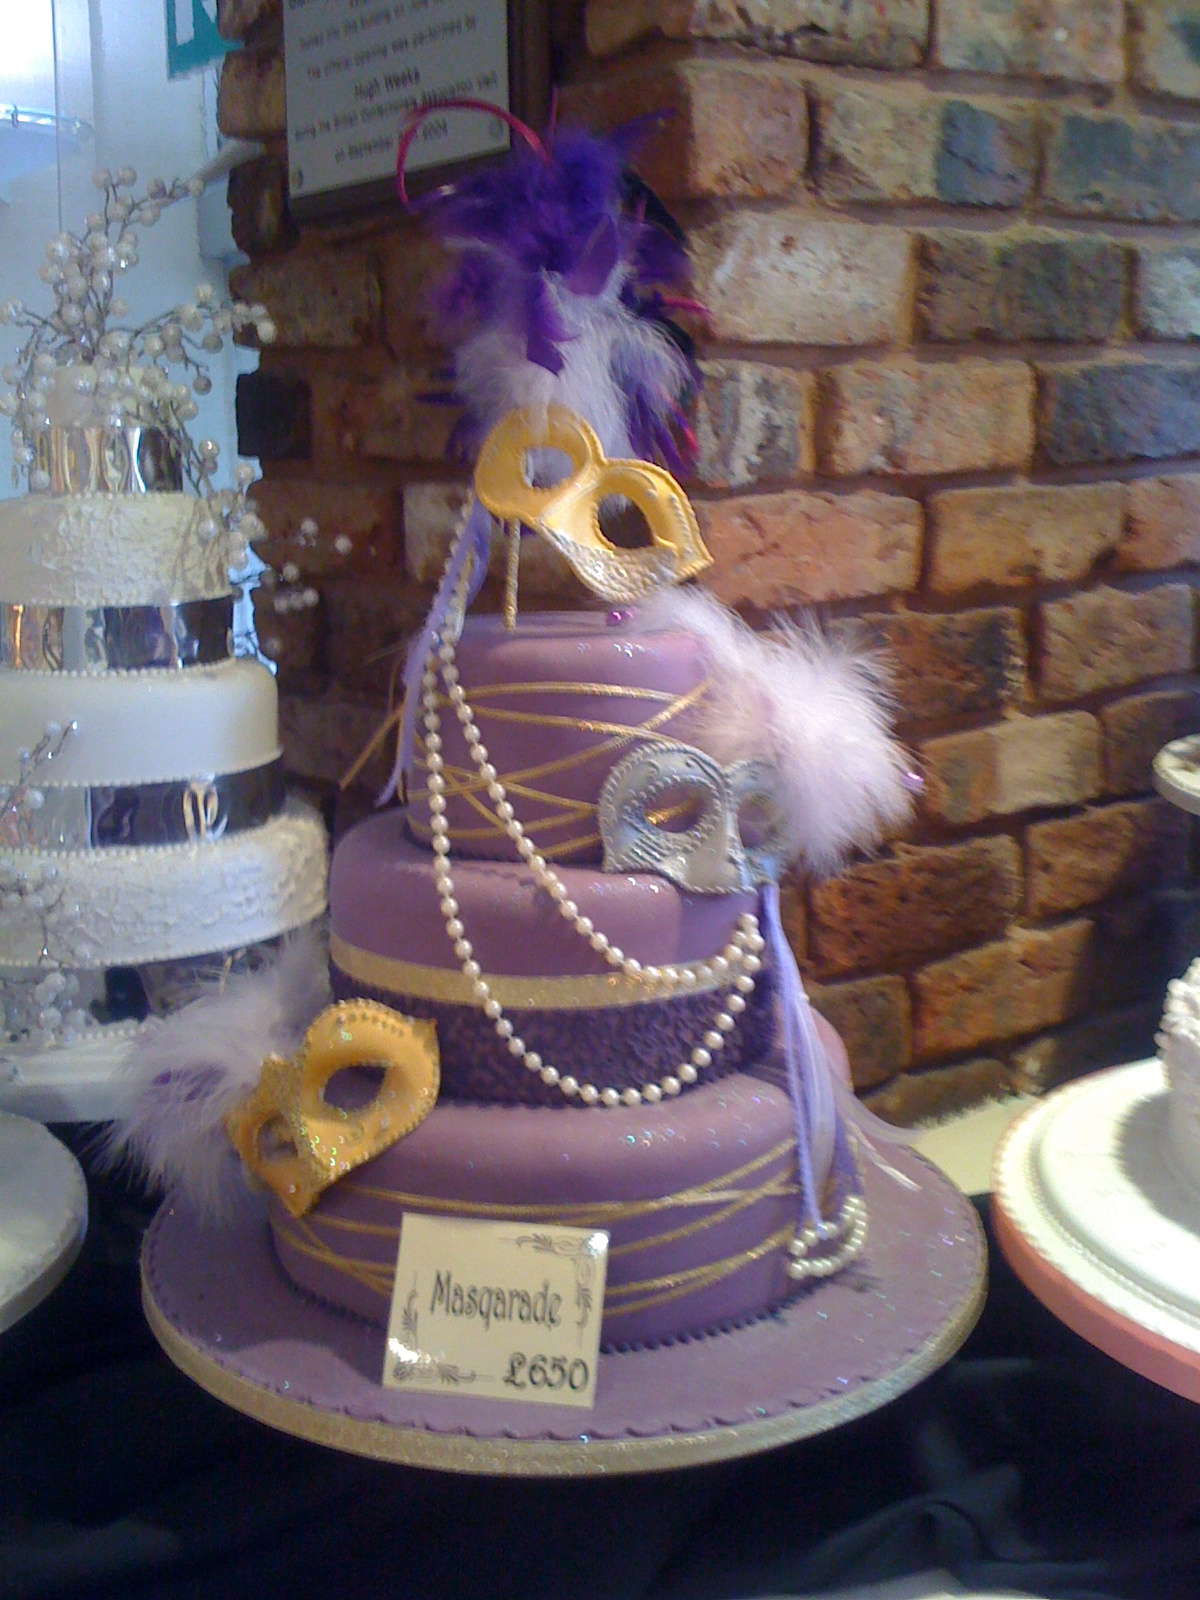 slatterys wedding cakes almost worth getting married again denisefrombolton 20193